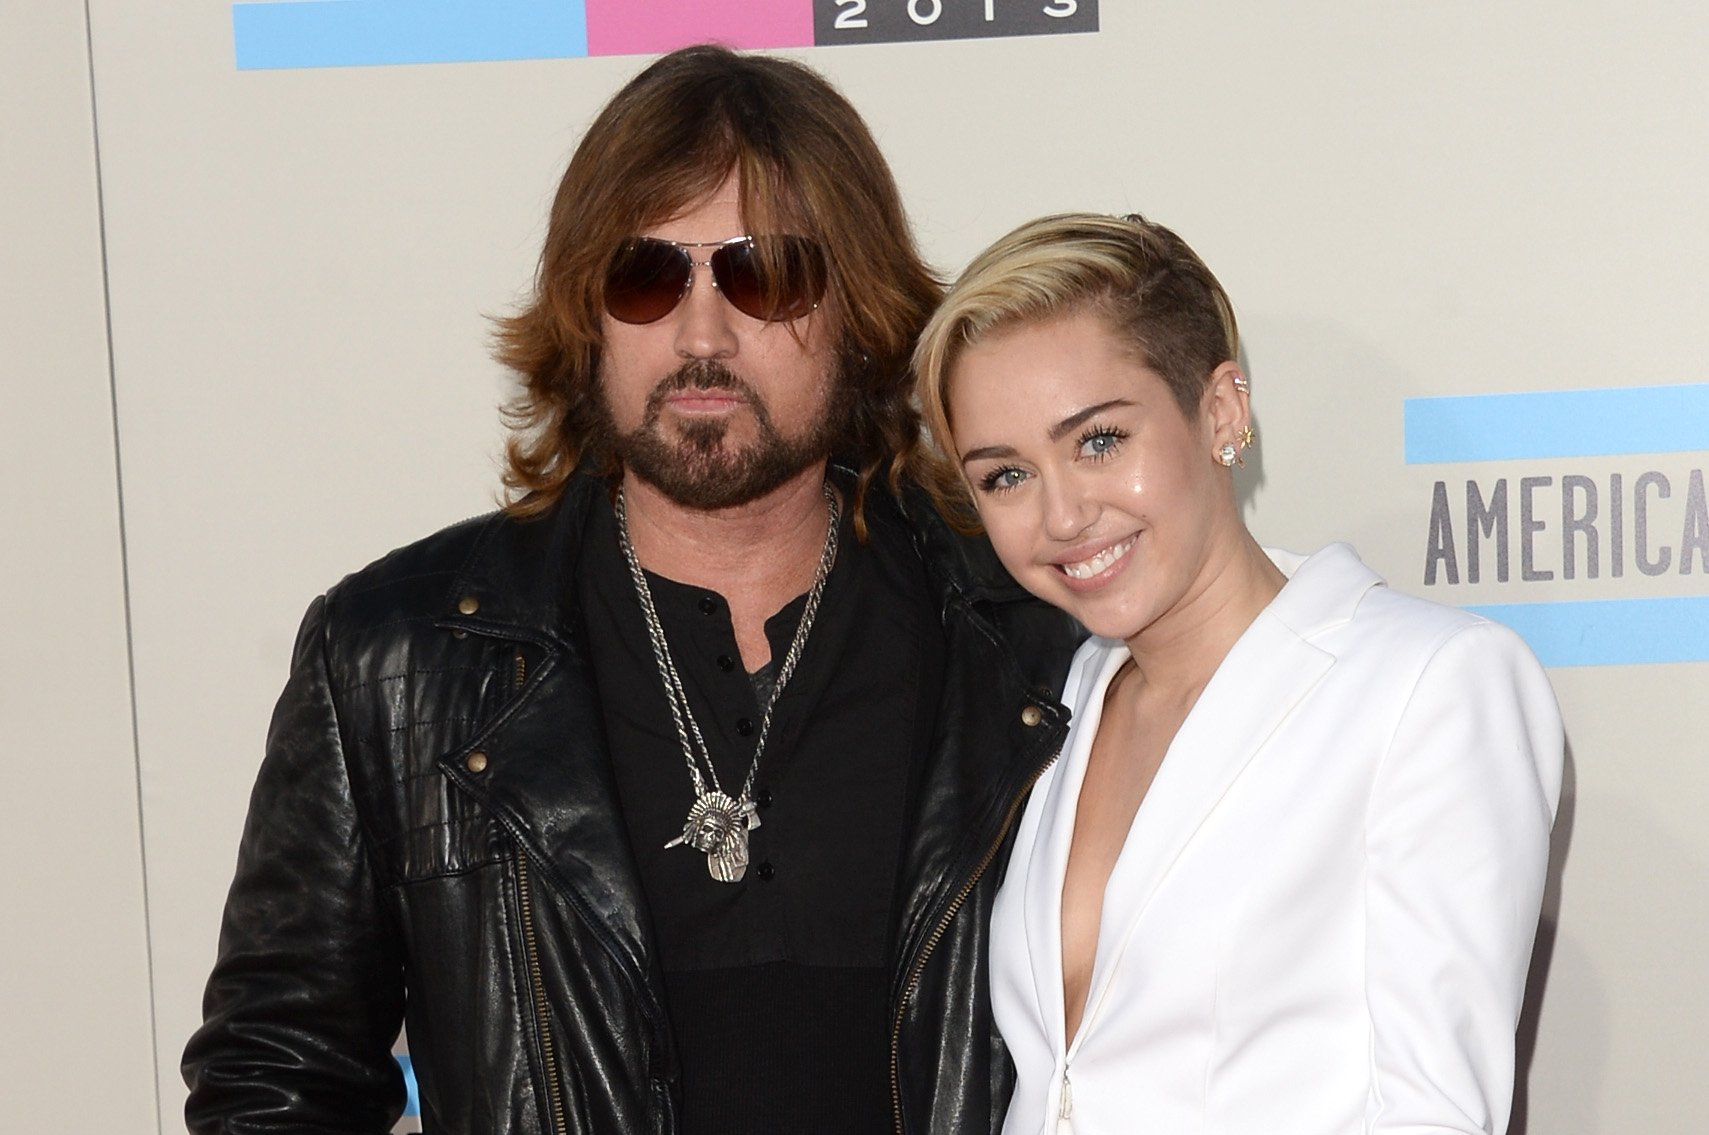 Miley and Billy Ray Cyrus